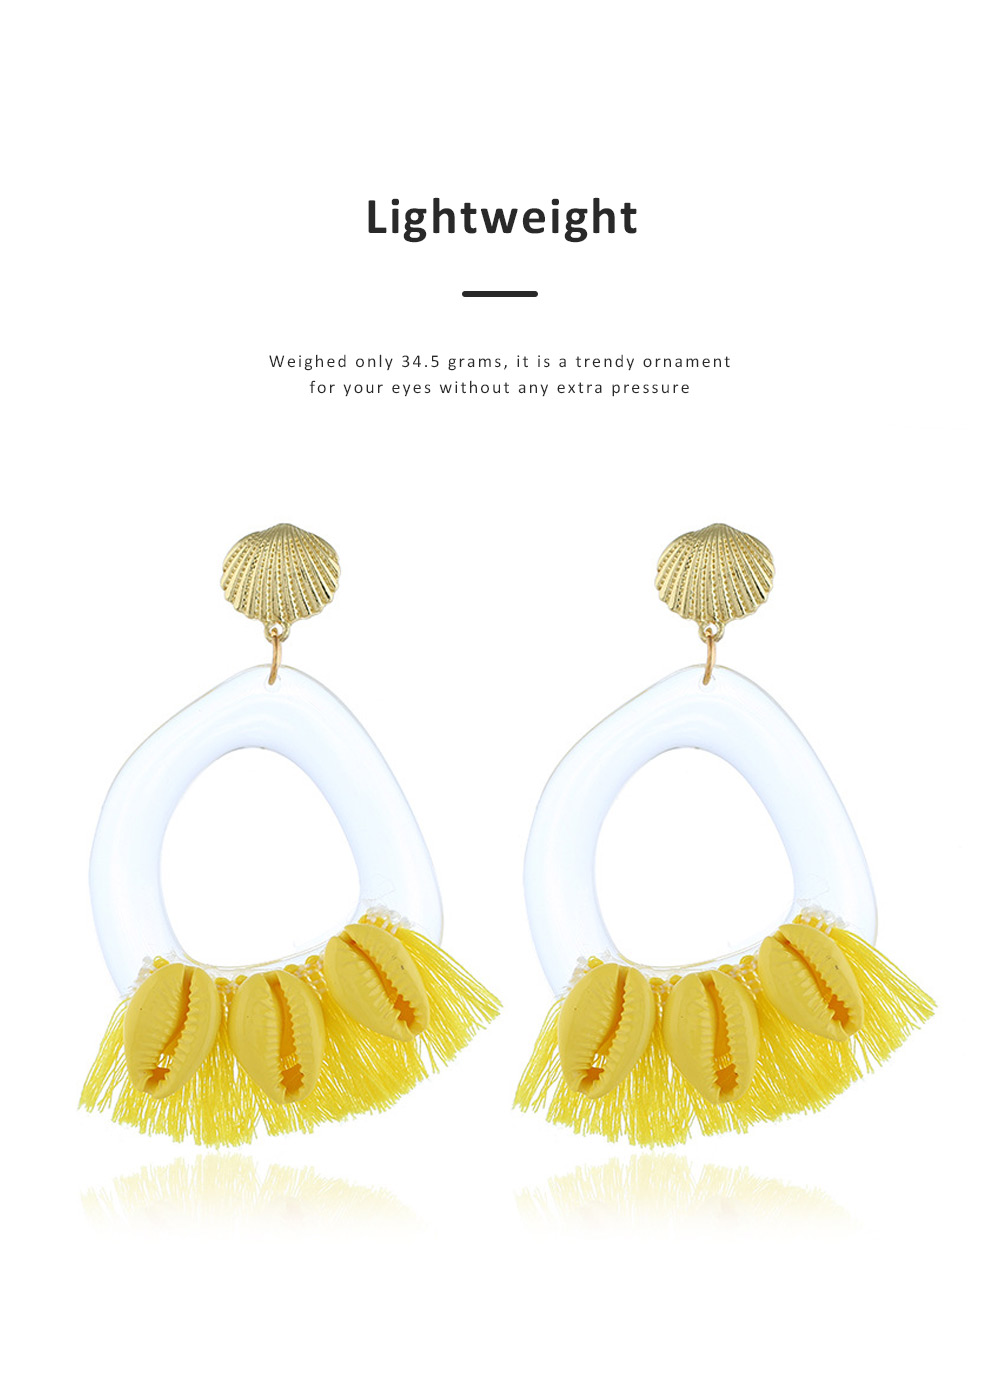 Stylish Boho Earring Natural Style Tassel Shell Accessory Attractive Dangle Earrings for Women Girls 4